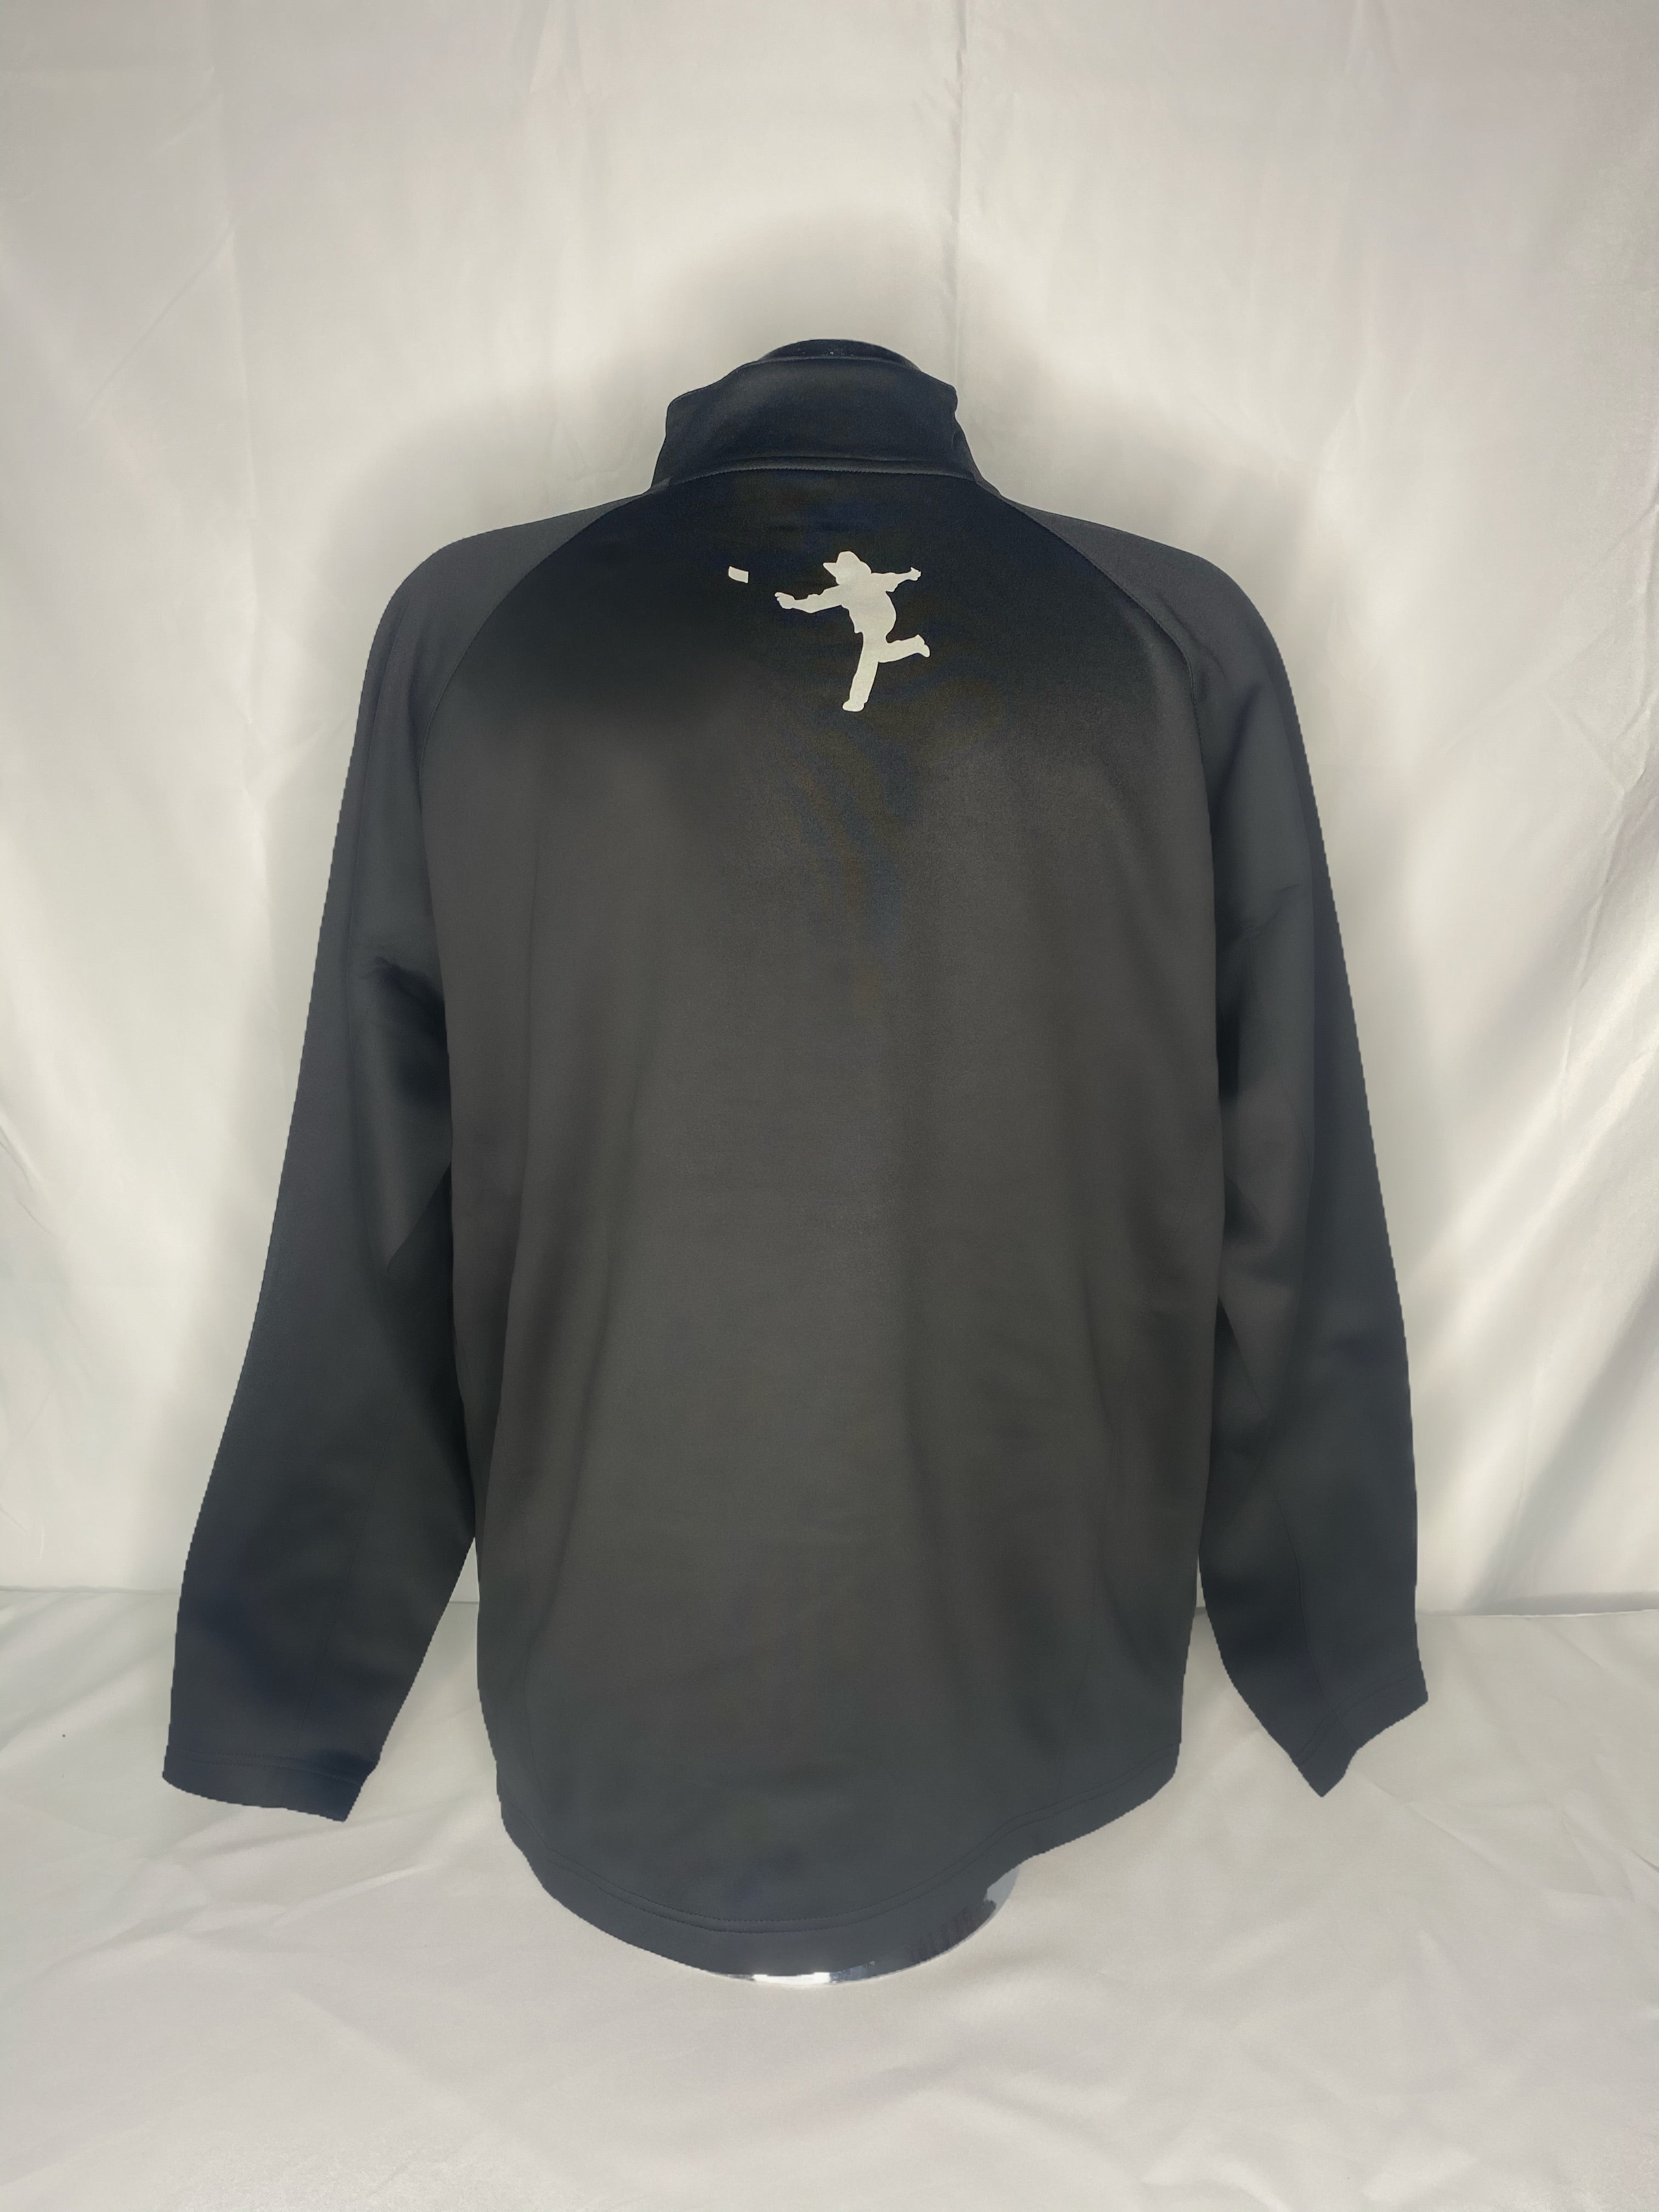 1/4 zip TCL Pullover